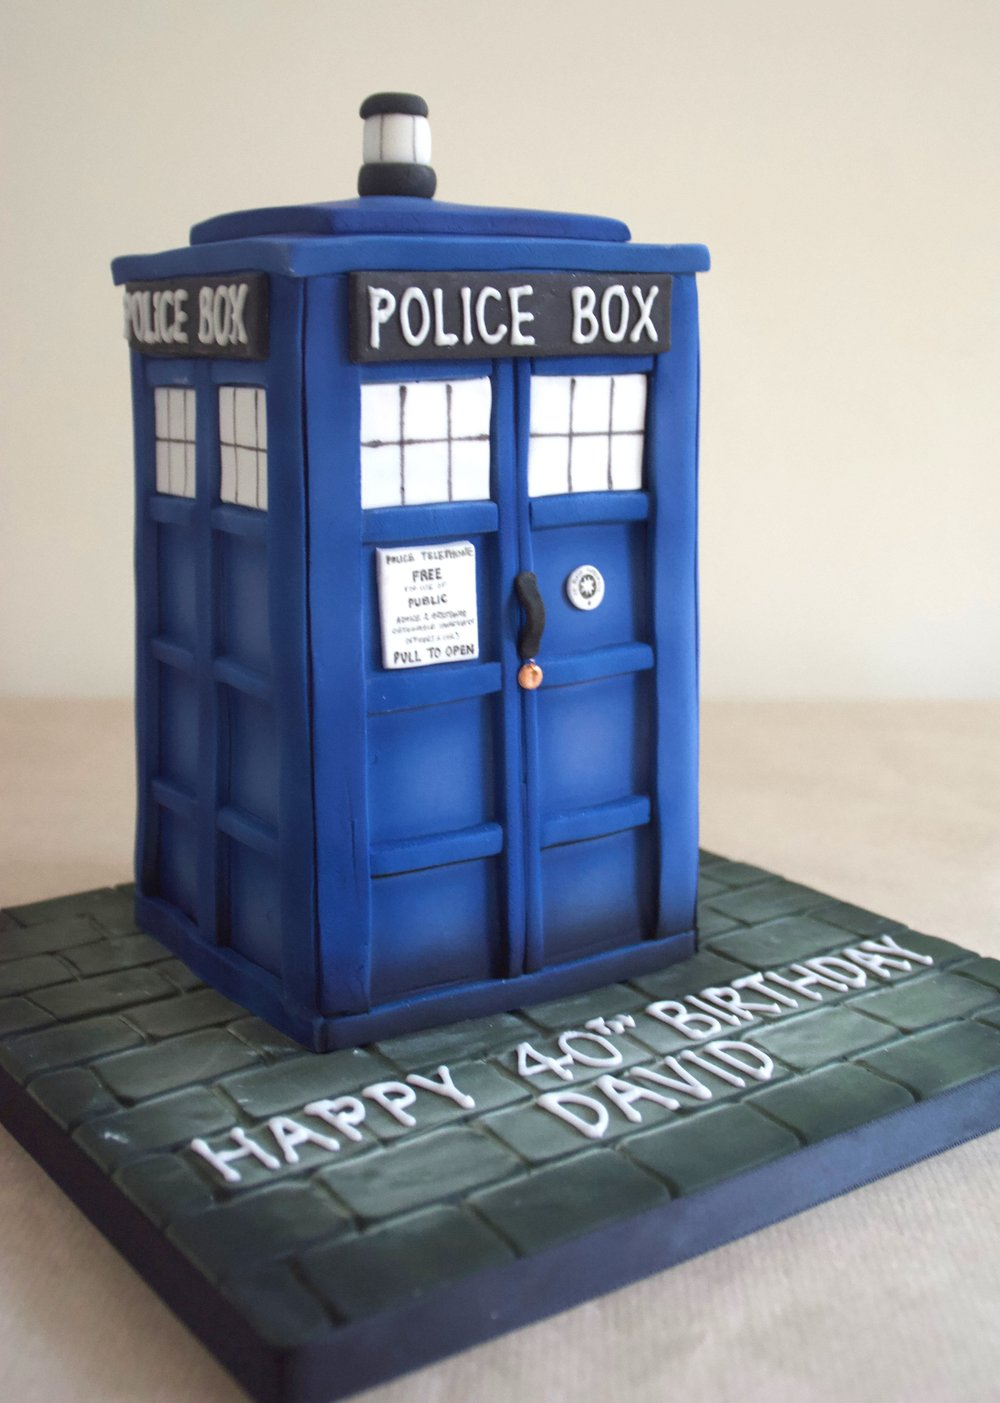 IMG_Doctor_Who_Tardis_birthday_cake.jpg